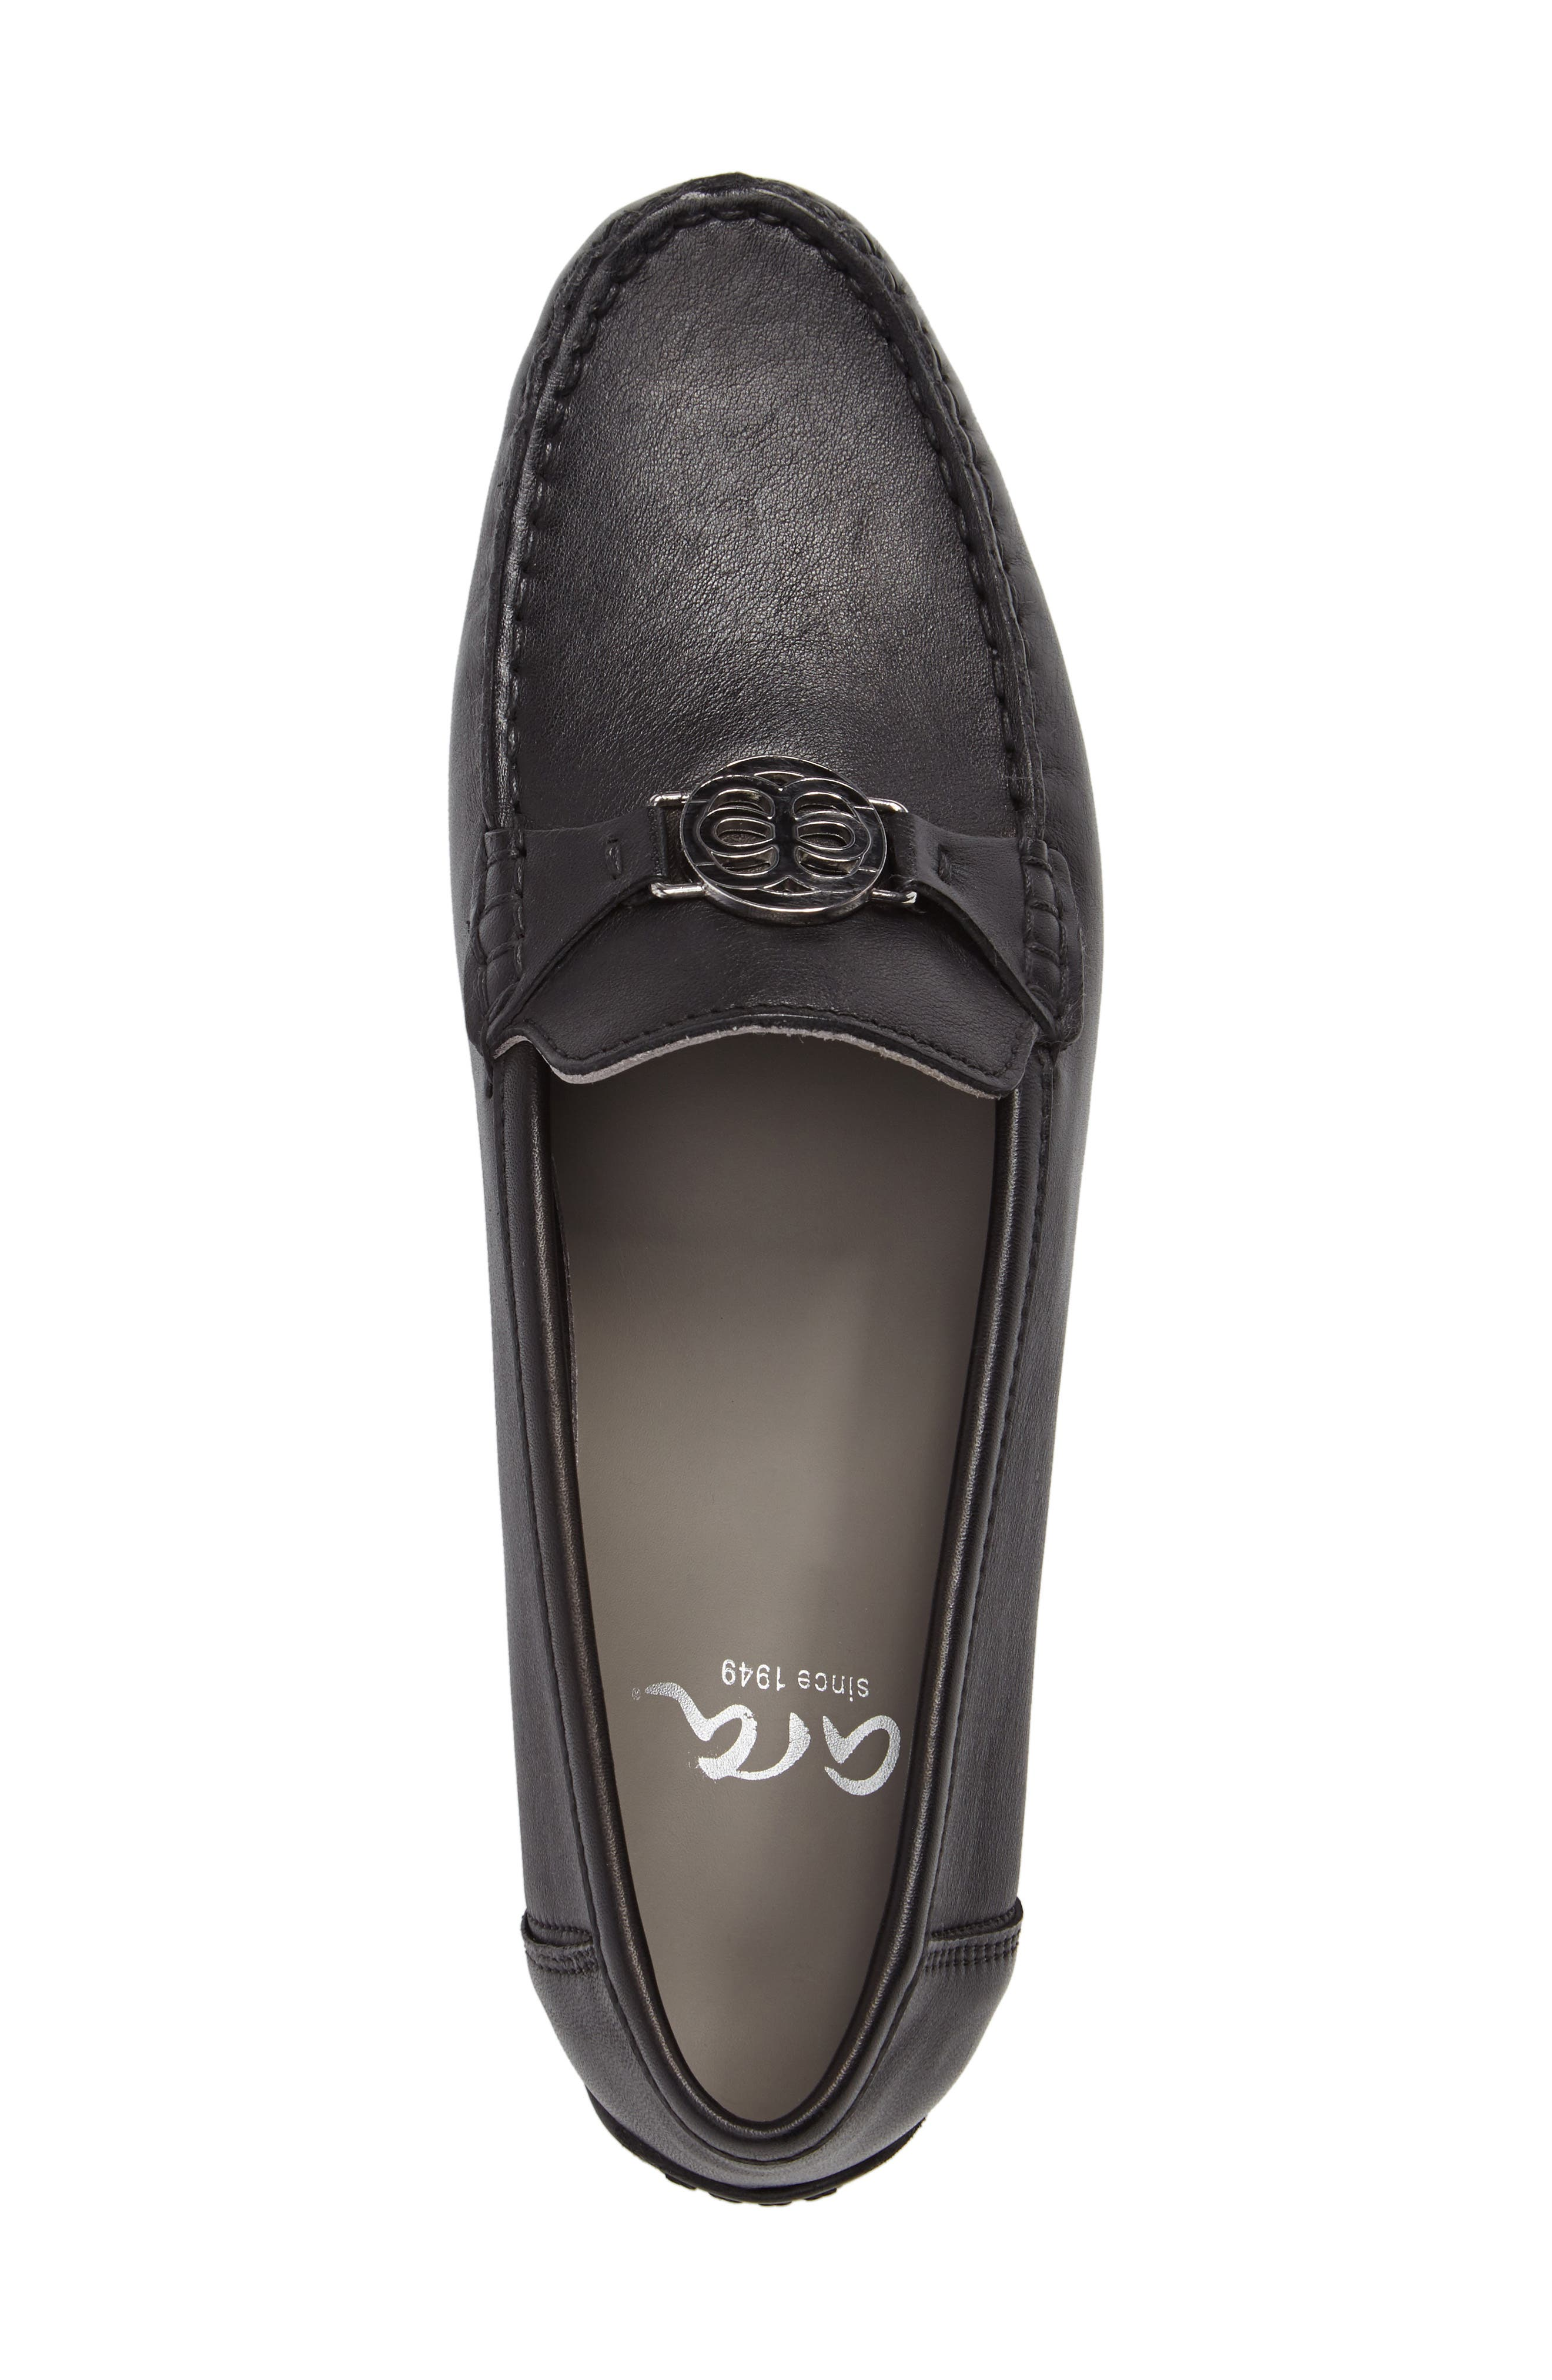 Blanche Loafer,                             Alternate thumbnail 5, color,                             Black Leather